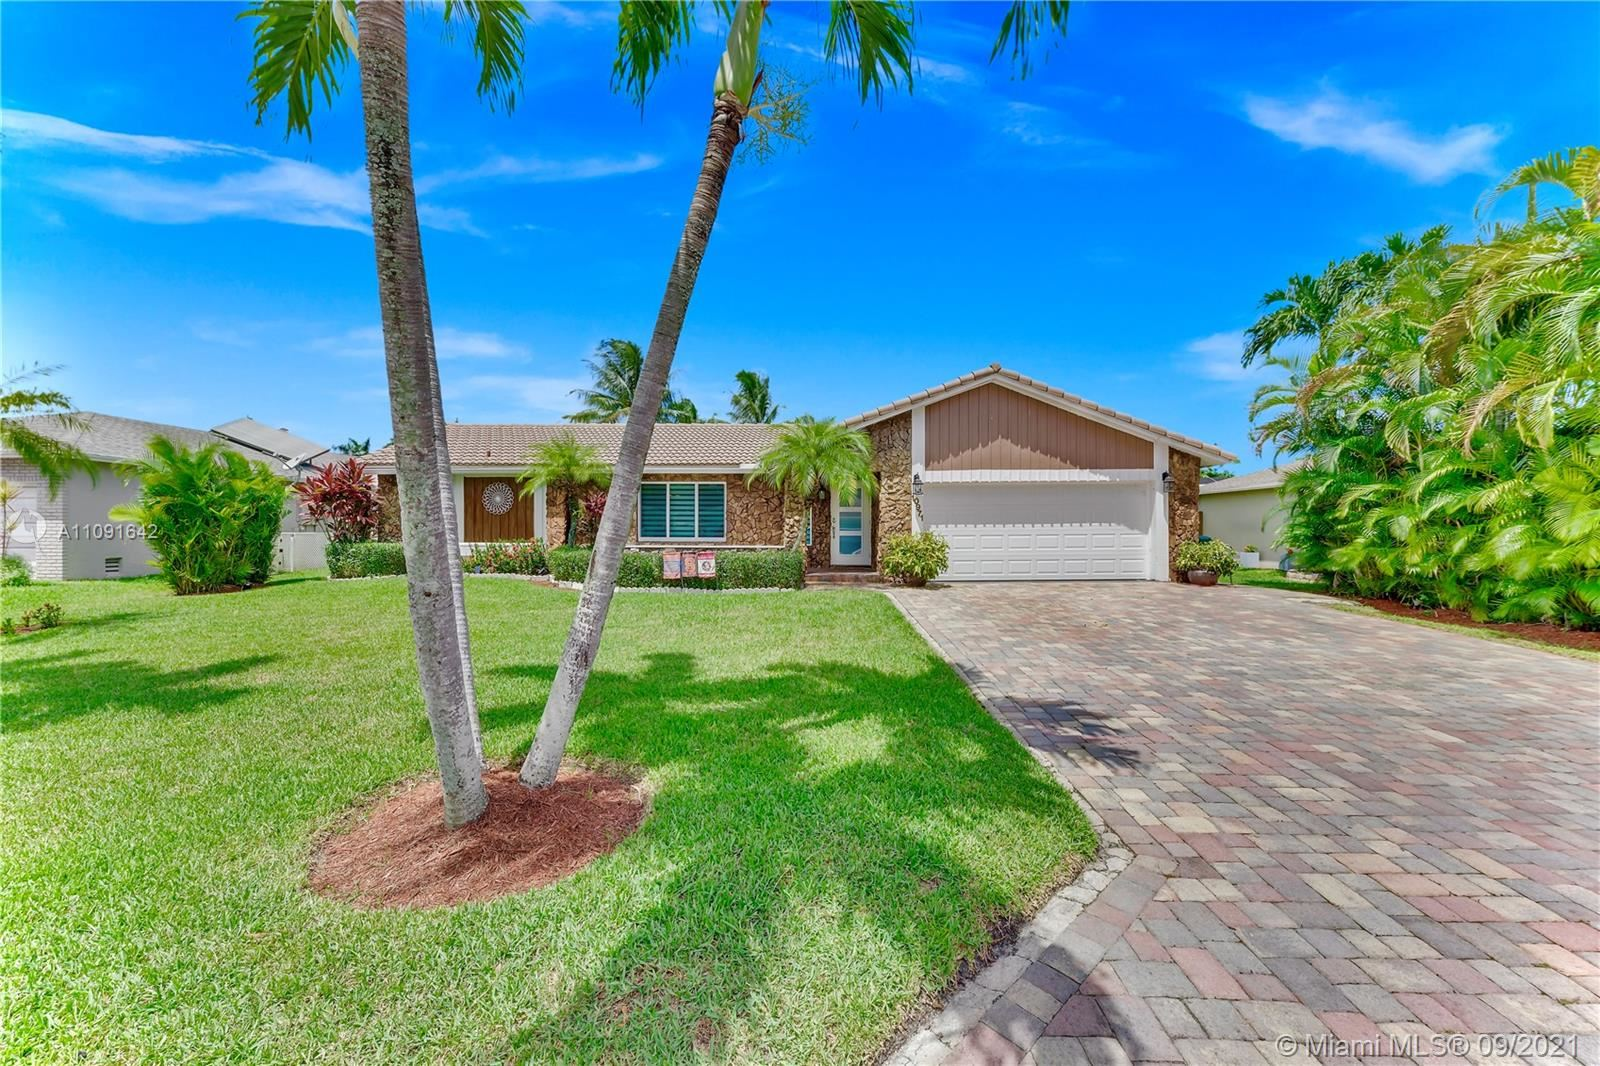 10971 NW 21st Pl, Coral Springs, FL 33071 - #: A11091642